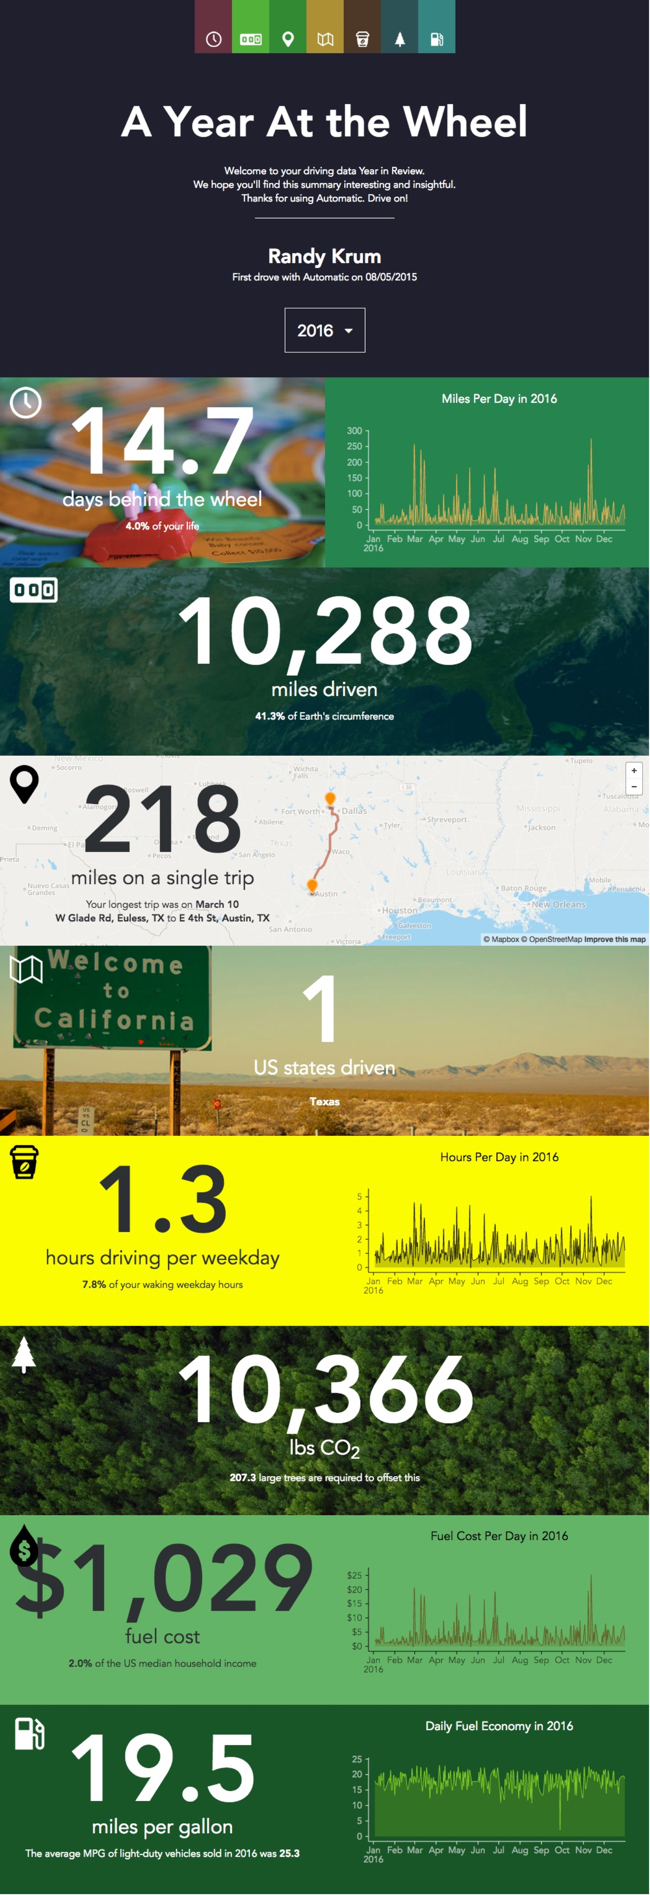 A Year of Driving 2016 infographic